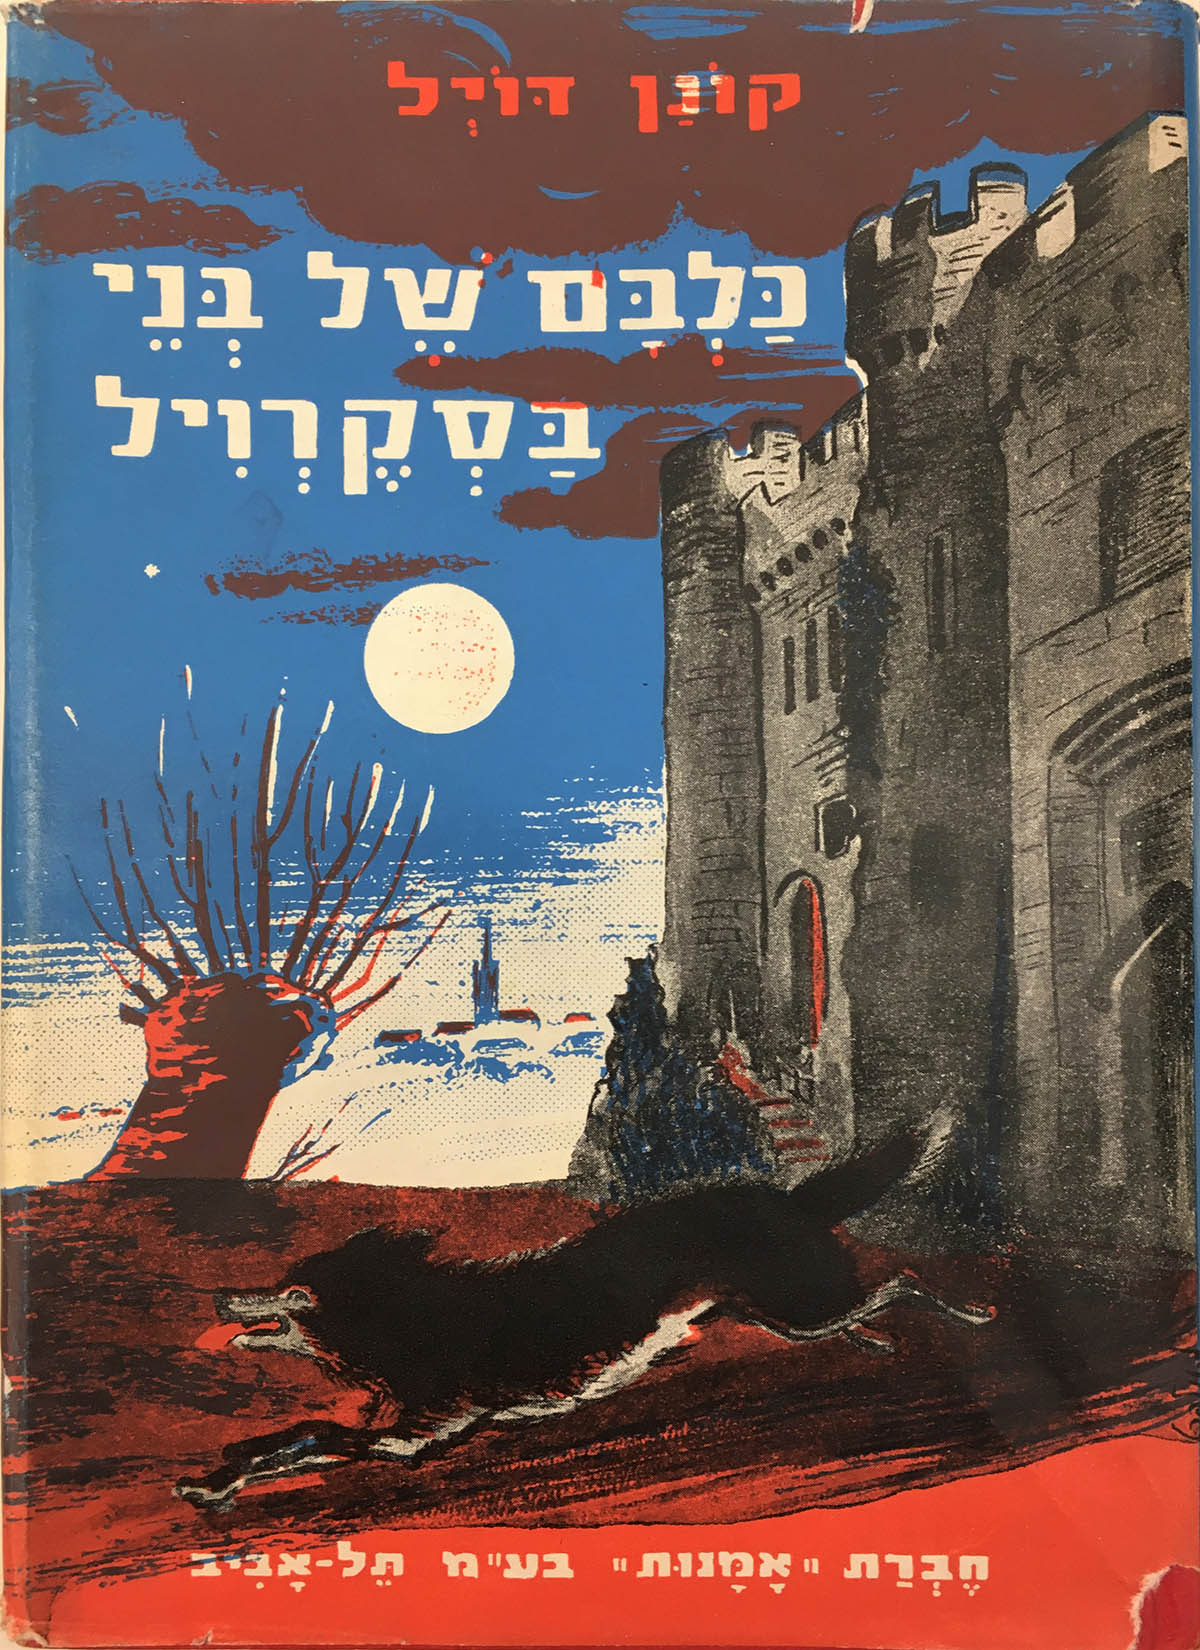 Doyle, Arthur Conan. The Hound of the Baskervilles, translated by unknown. Telaviv: Art Company Ltd, 1954.